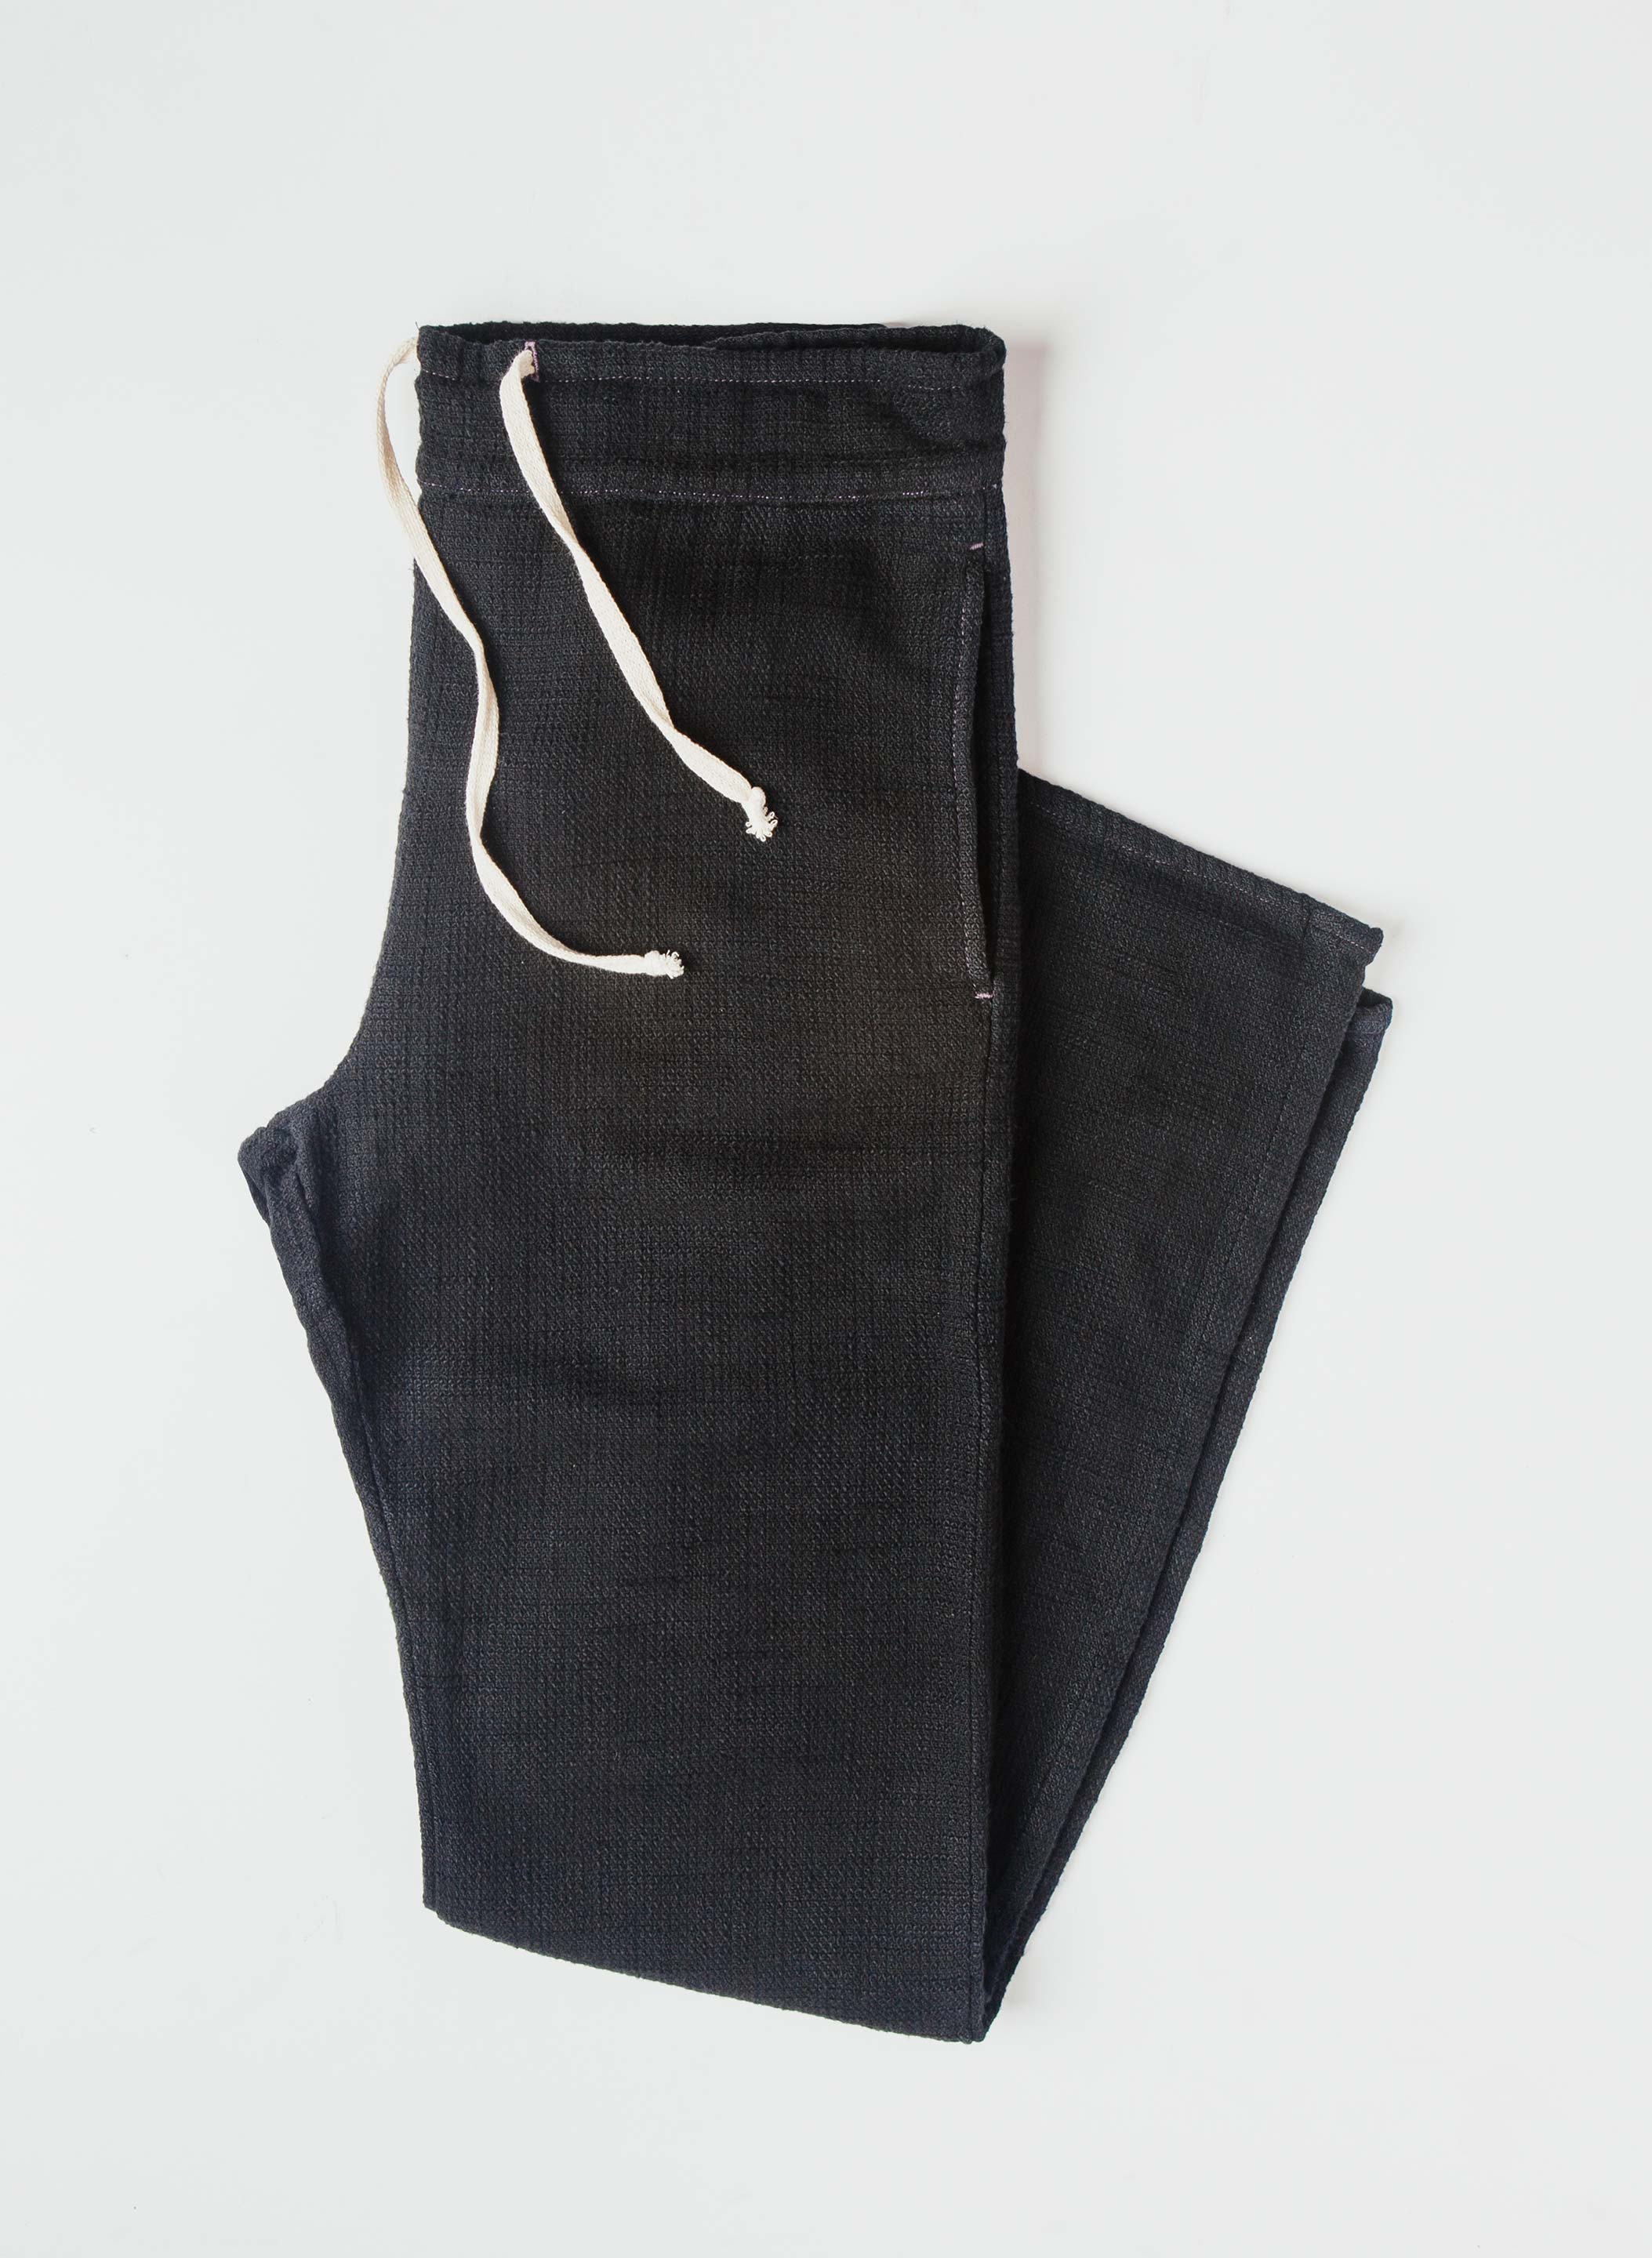 imogene + willie - fethiye in overdyed black